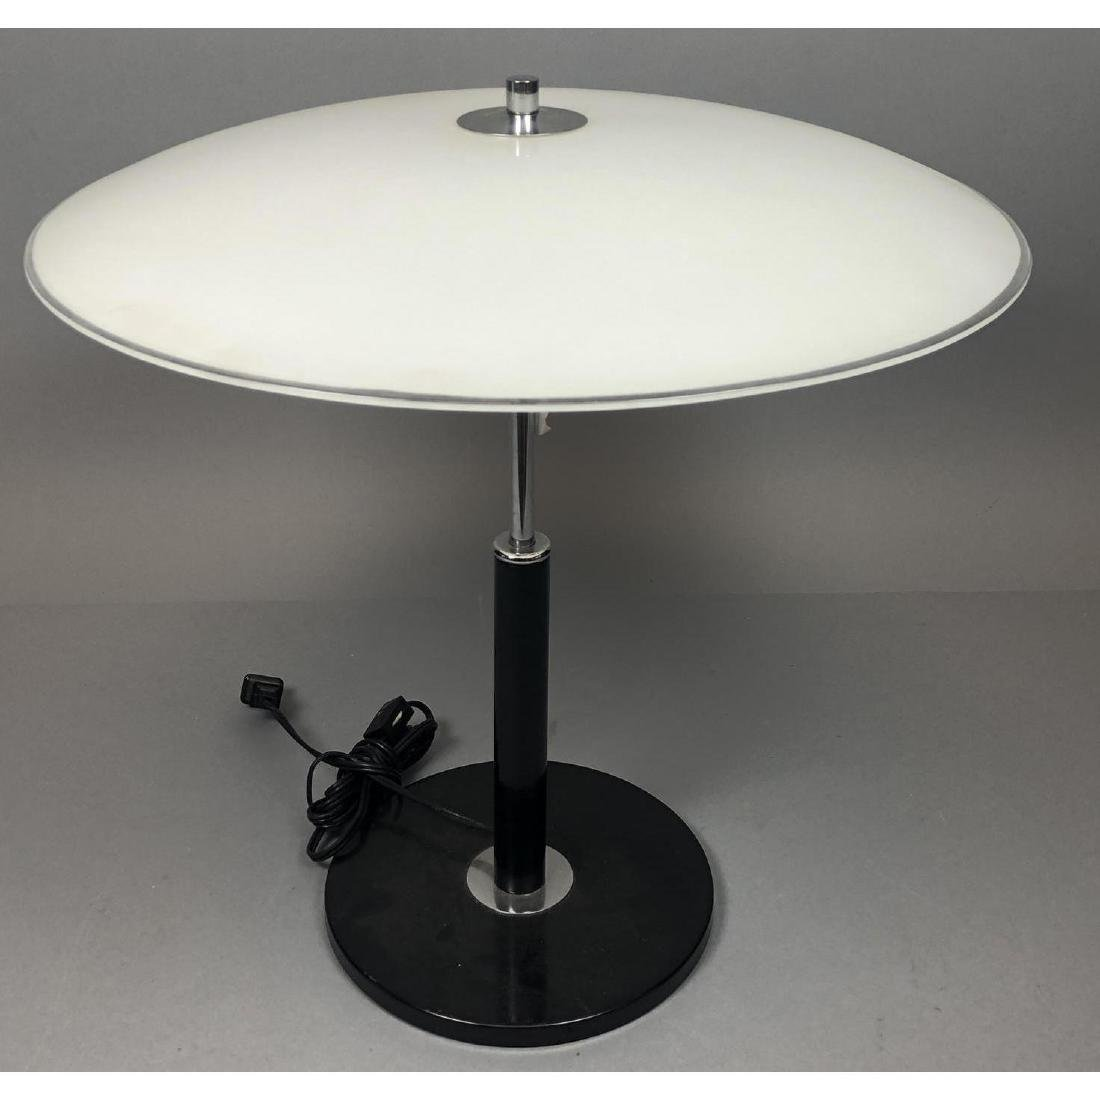 Glass Saucer Shade Table Desk Lamp. Black and chr